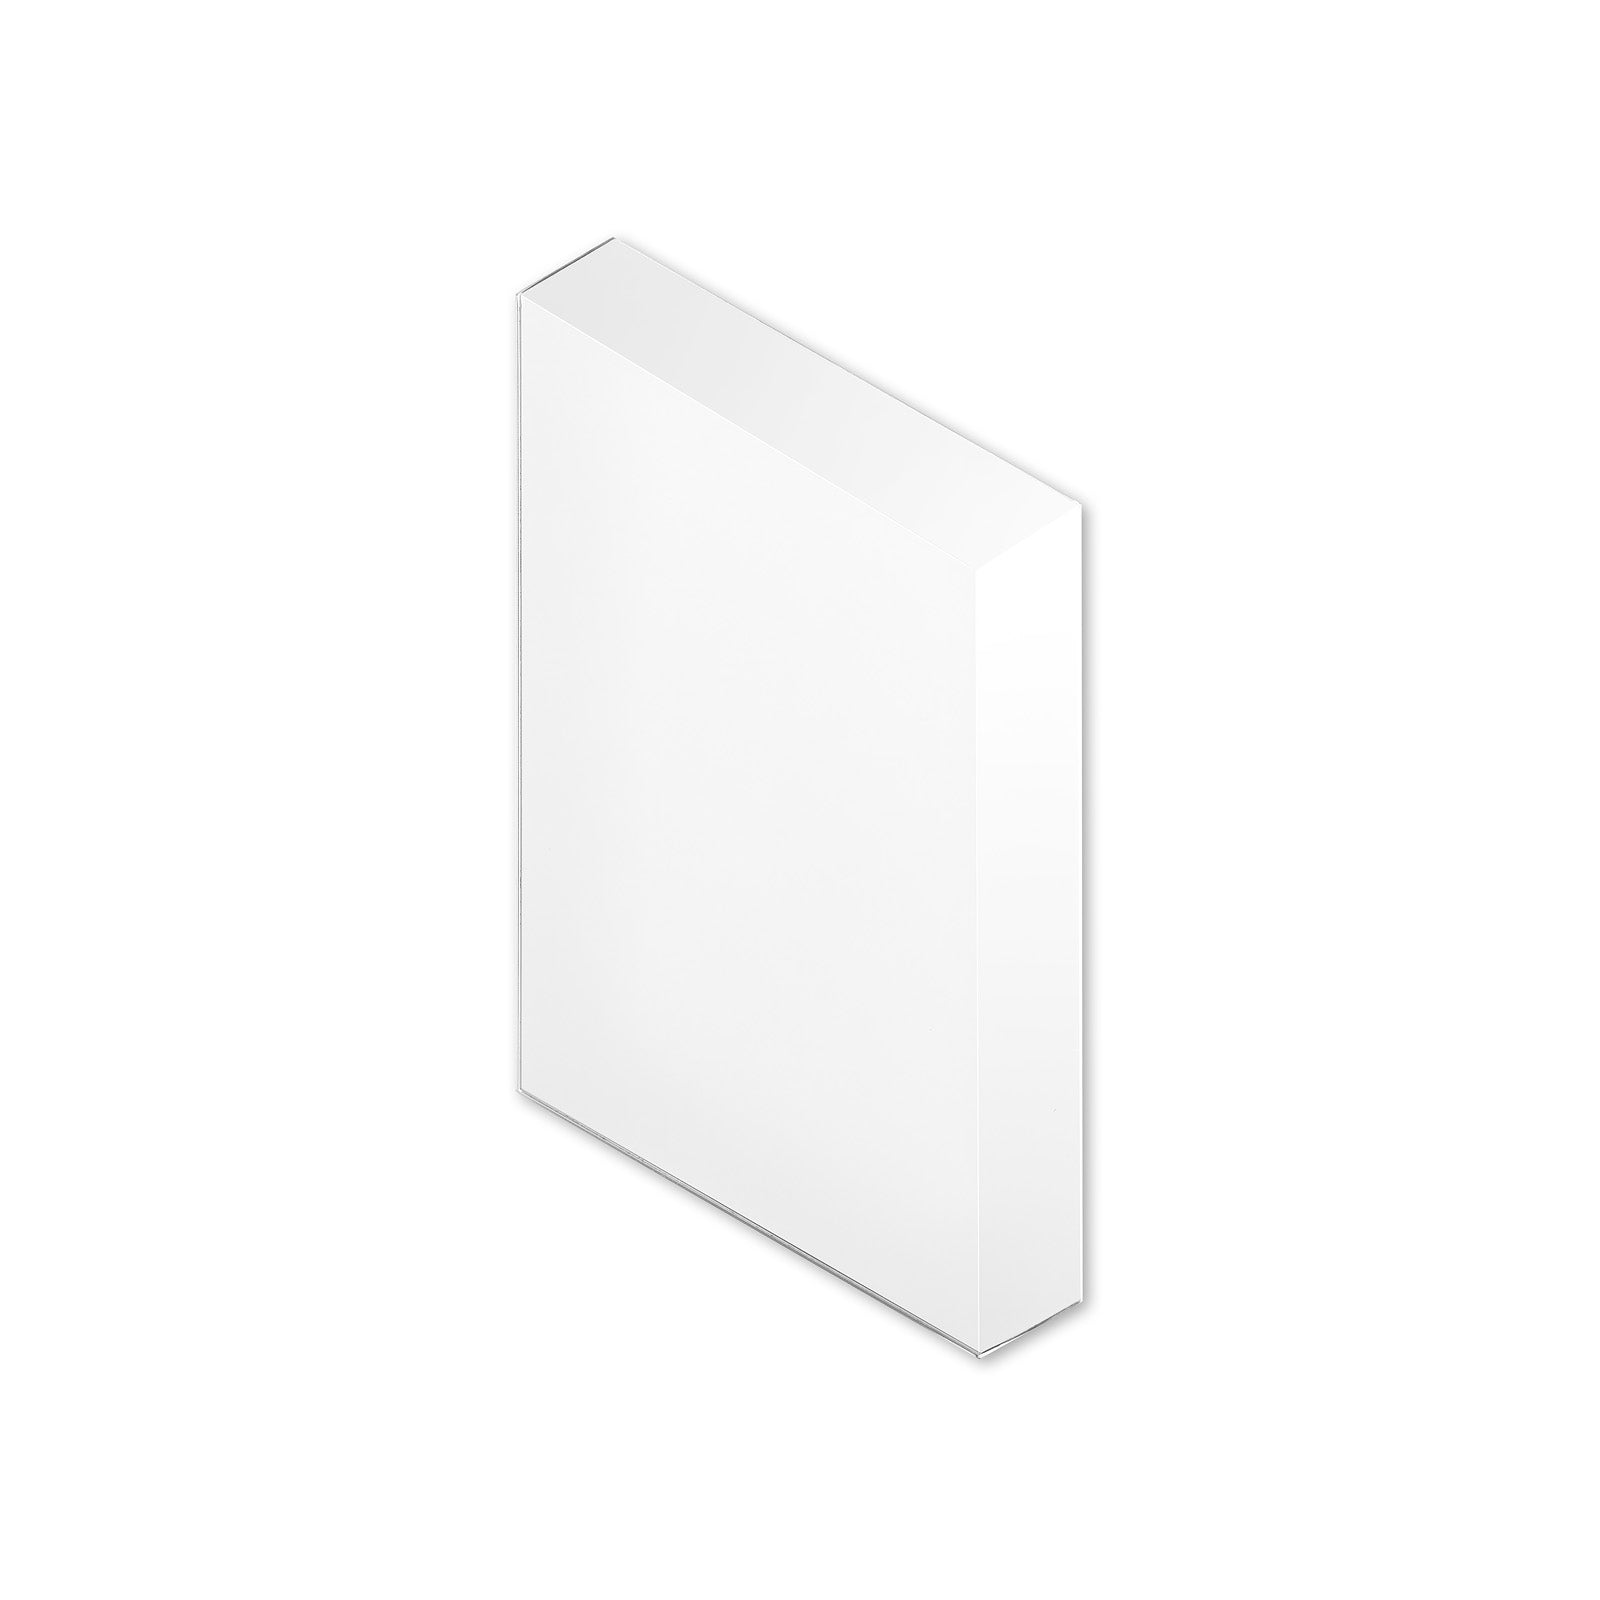 Small Facett Mirror by Puik.